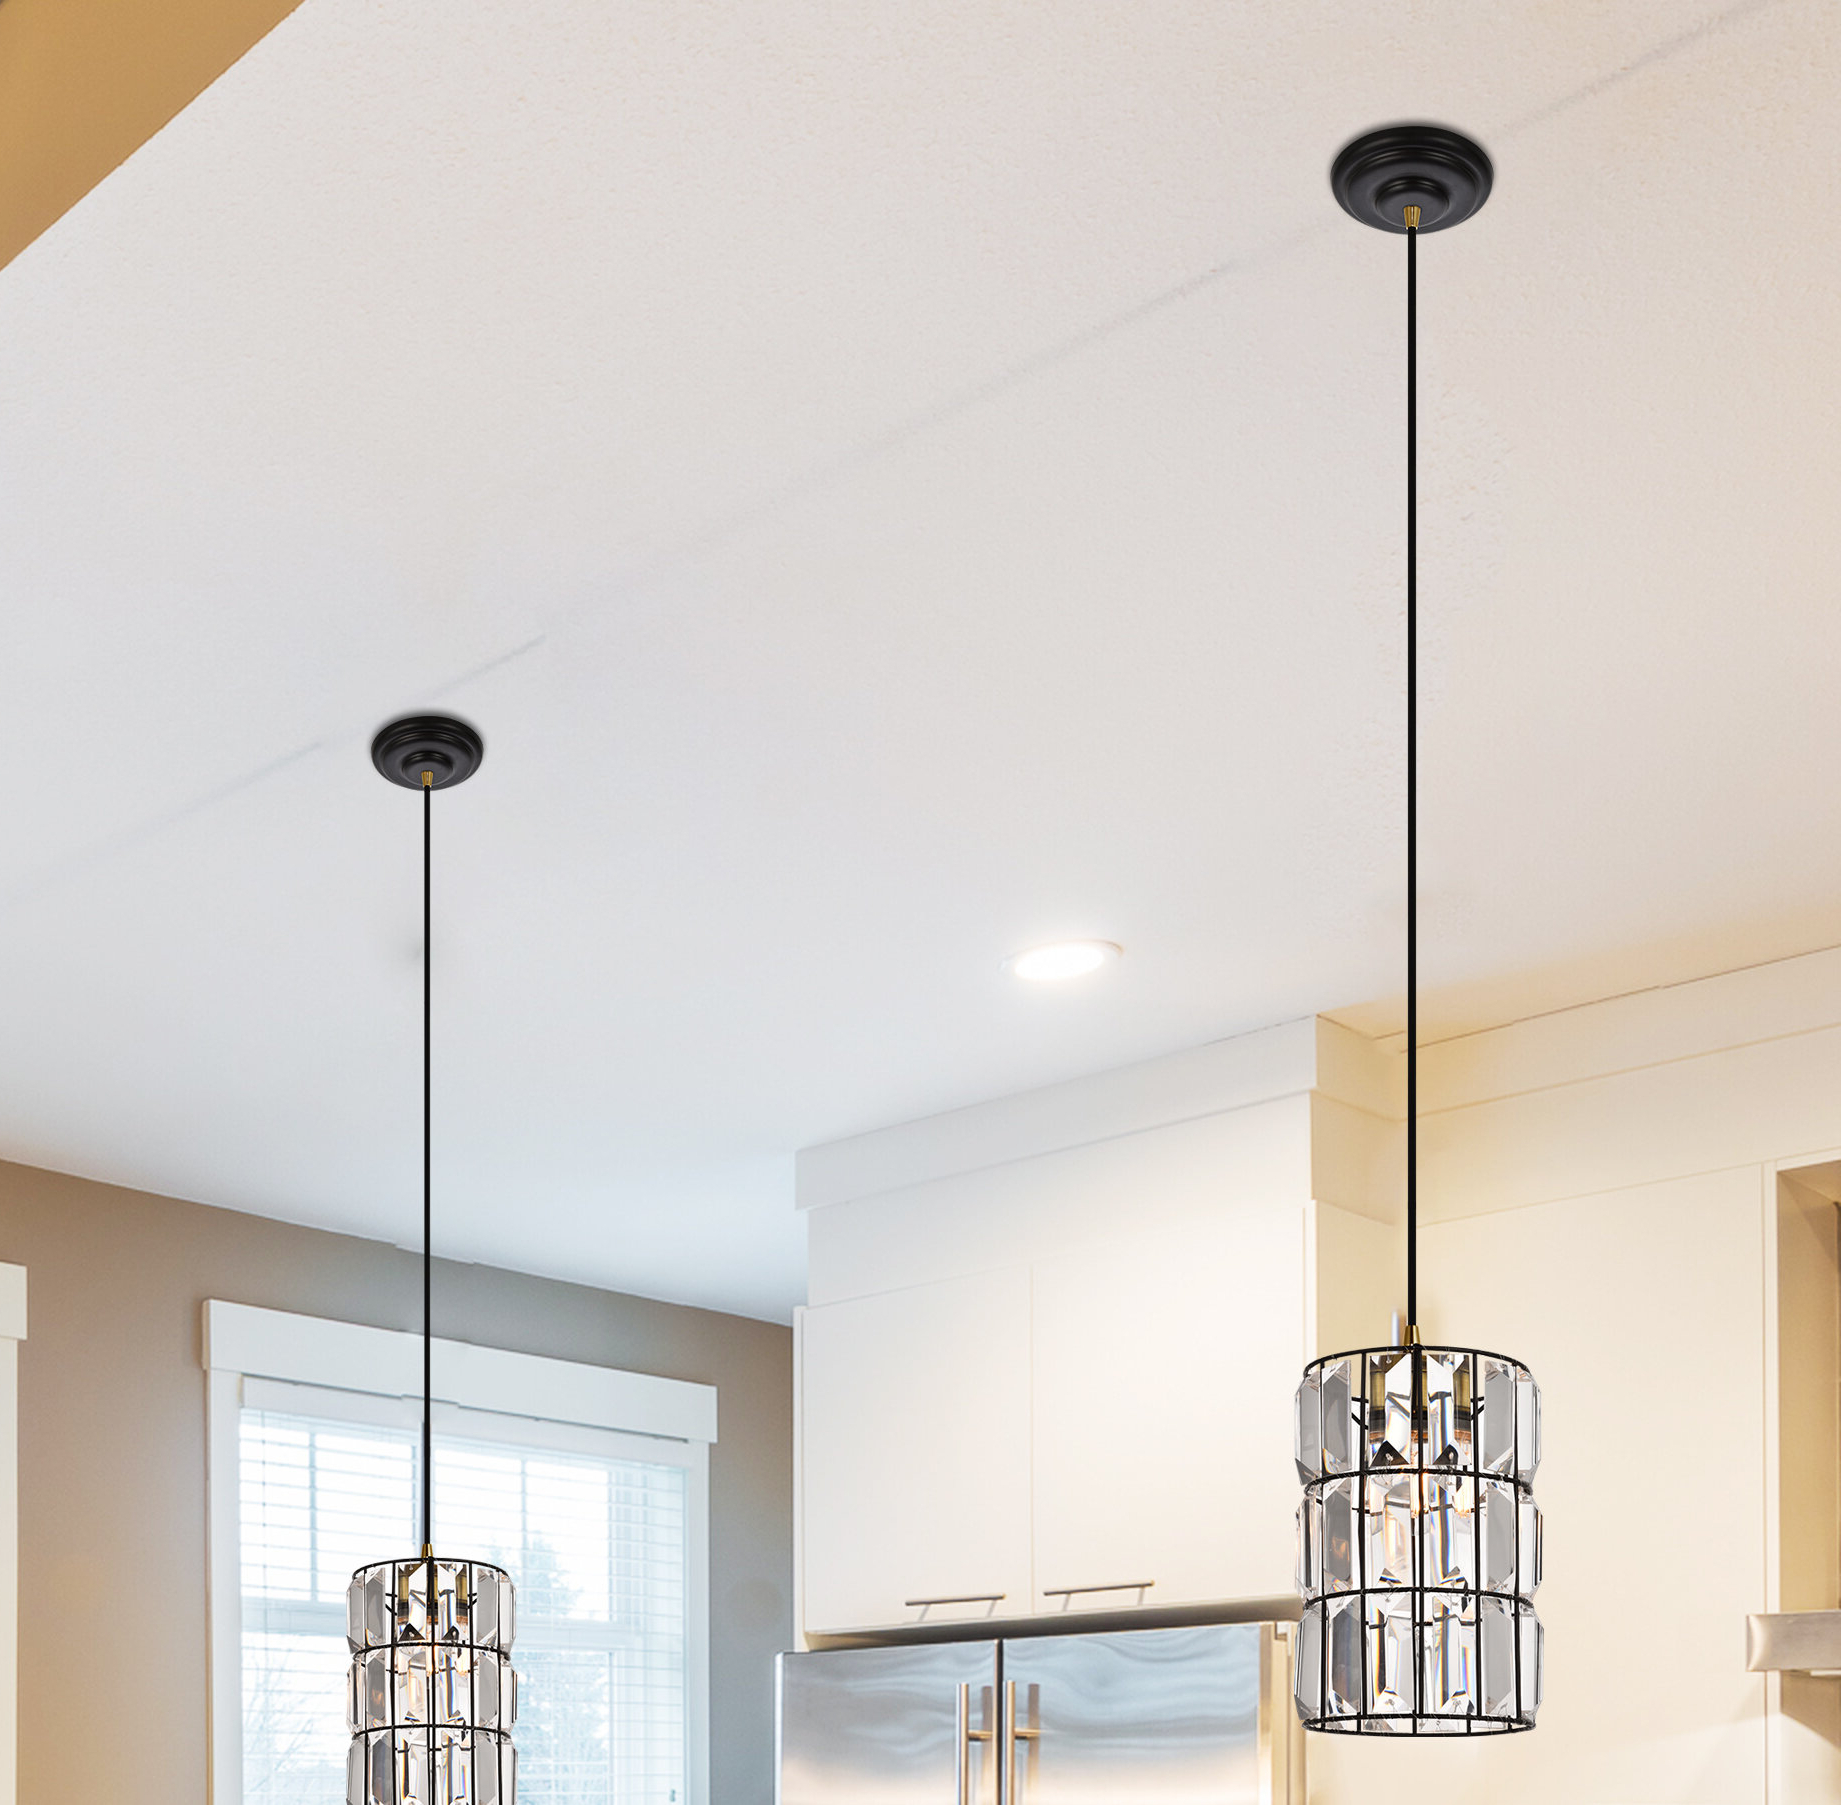 Kraker 1 Light Single Cylinder Pendants With Regard To Recent Colston 1 Light Single Cylinder Pendant (View 10 of 25)